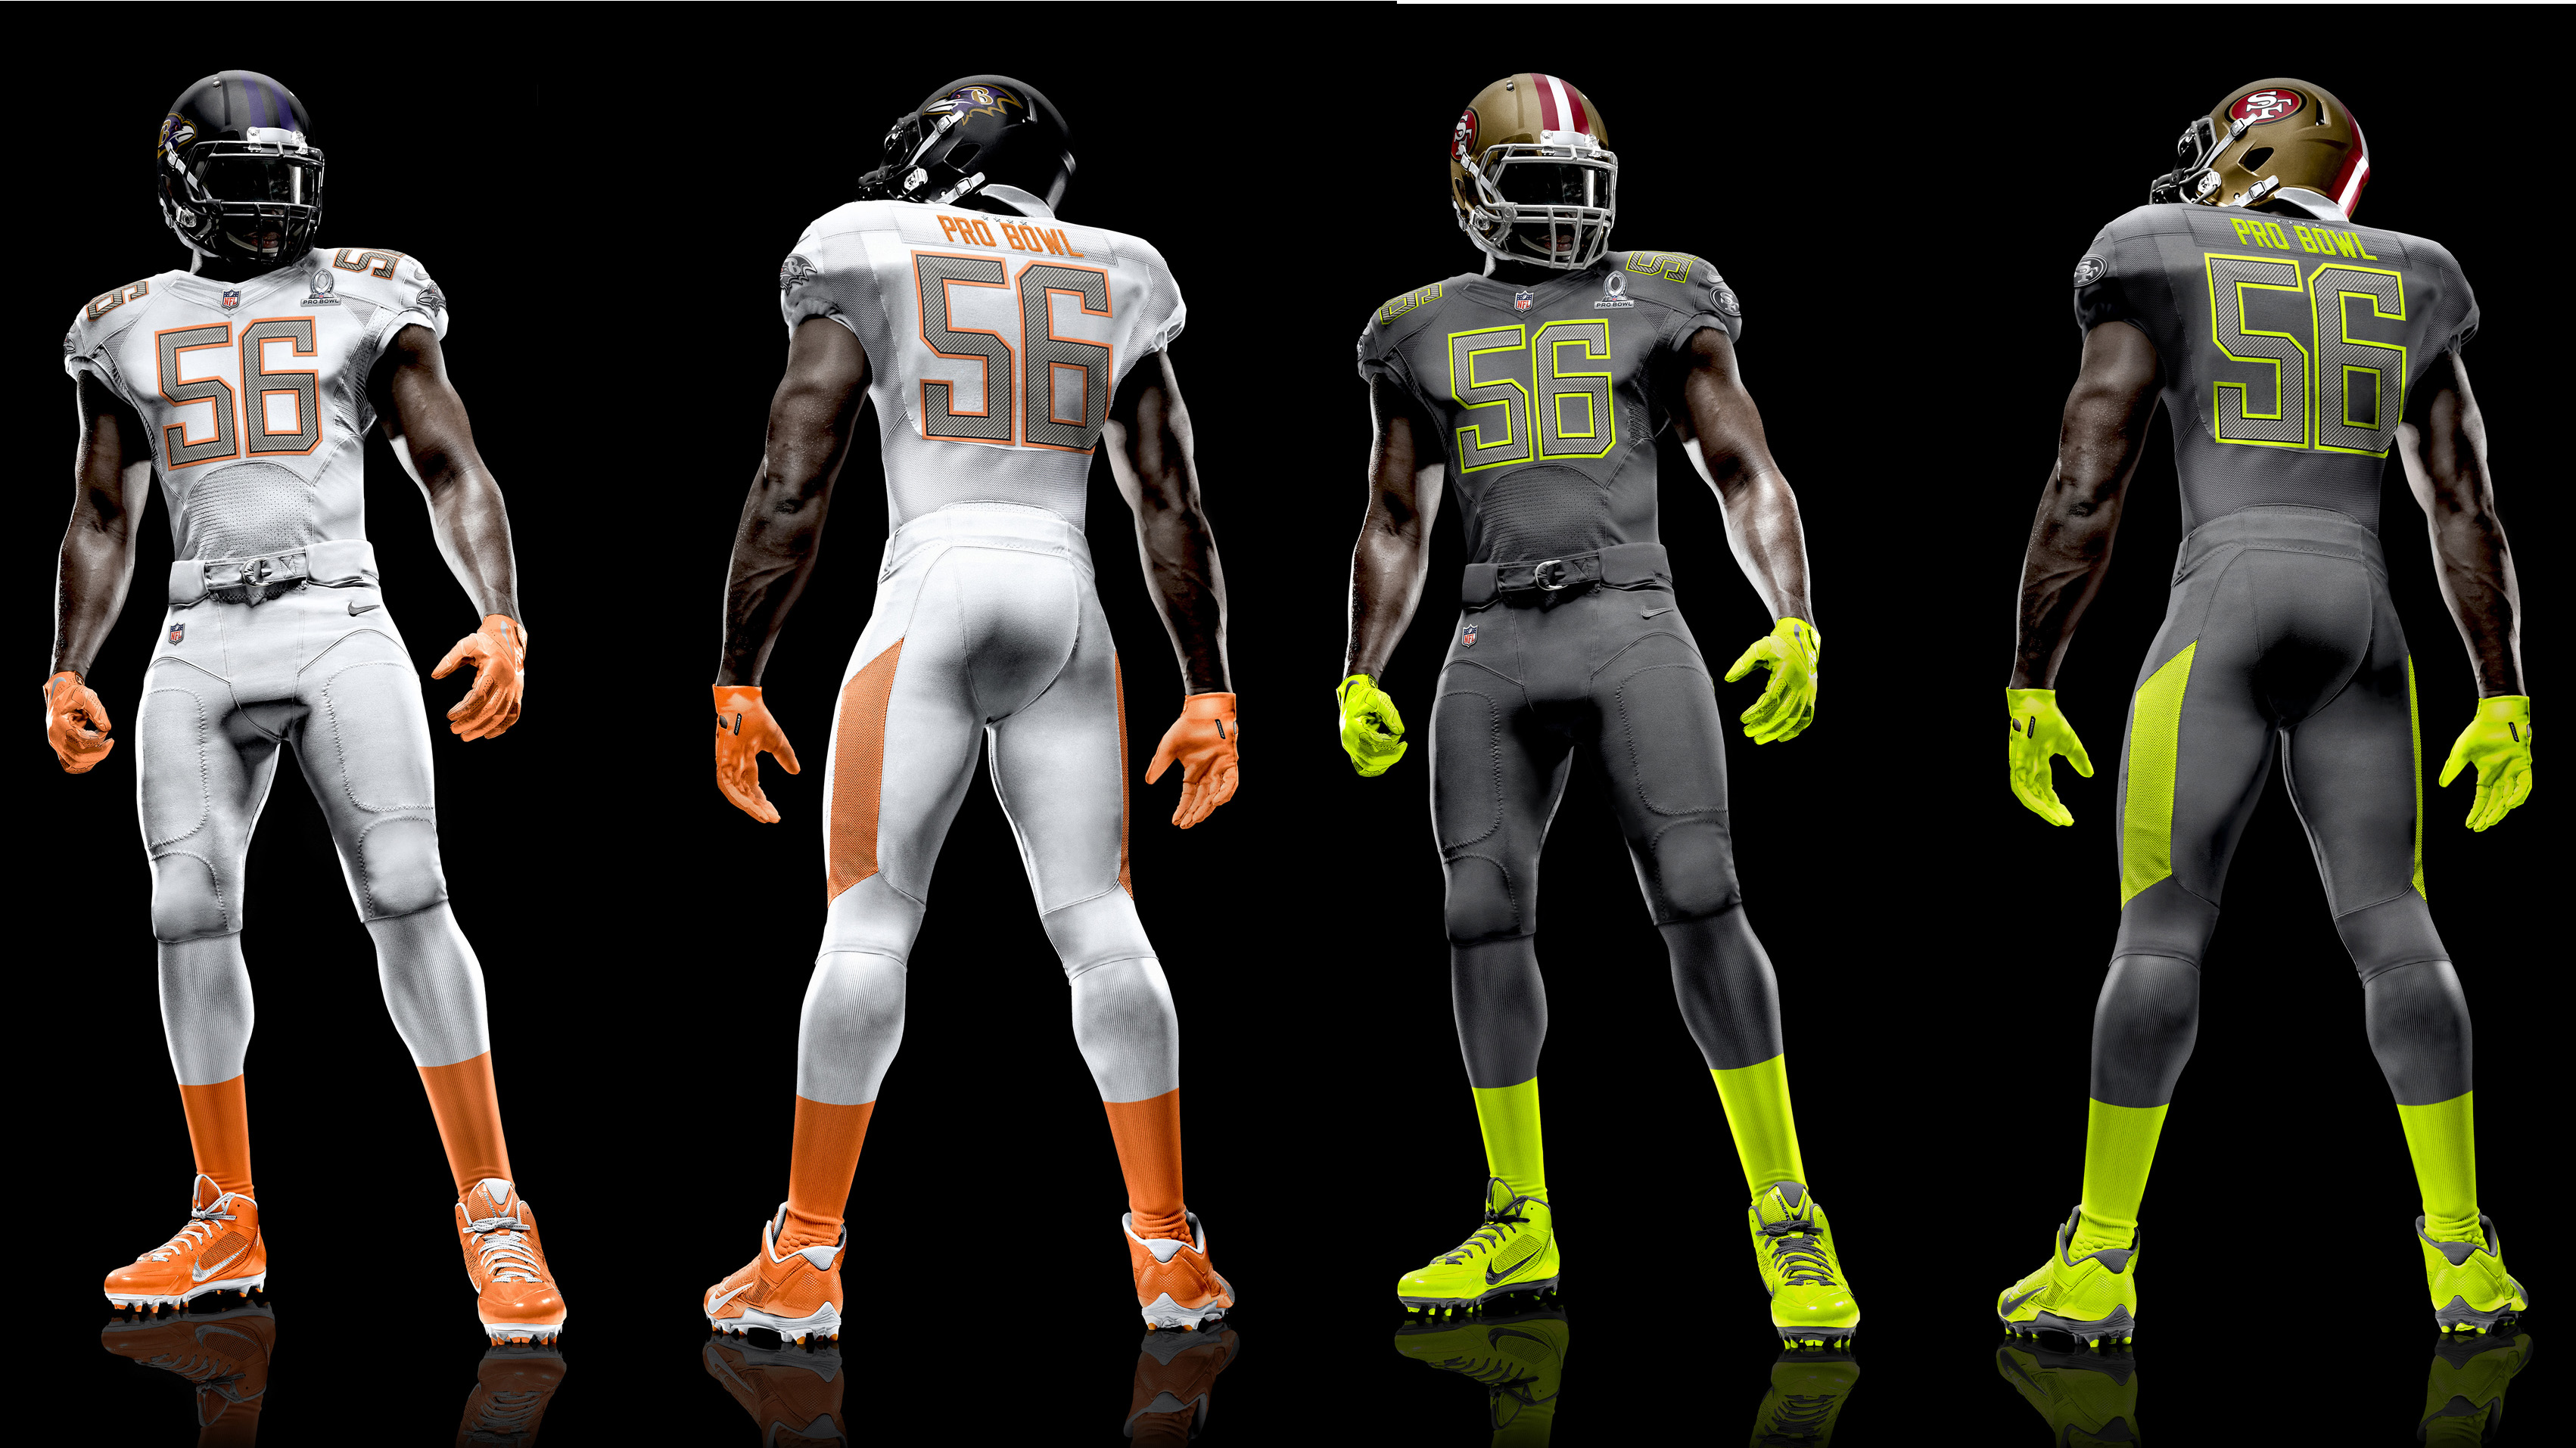 eab77177 The NFL Nike Elite 51 Pro Bowl uniform—sure to become bestselling jerseys,  if only as nightclub attire. (courtesy NFL.com)